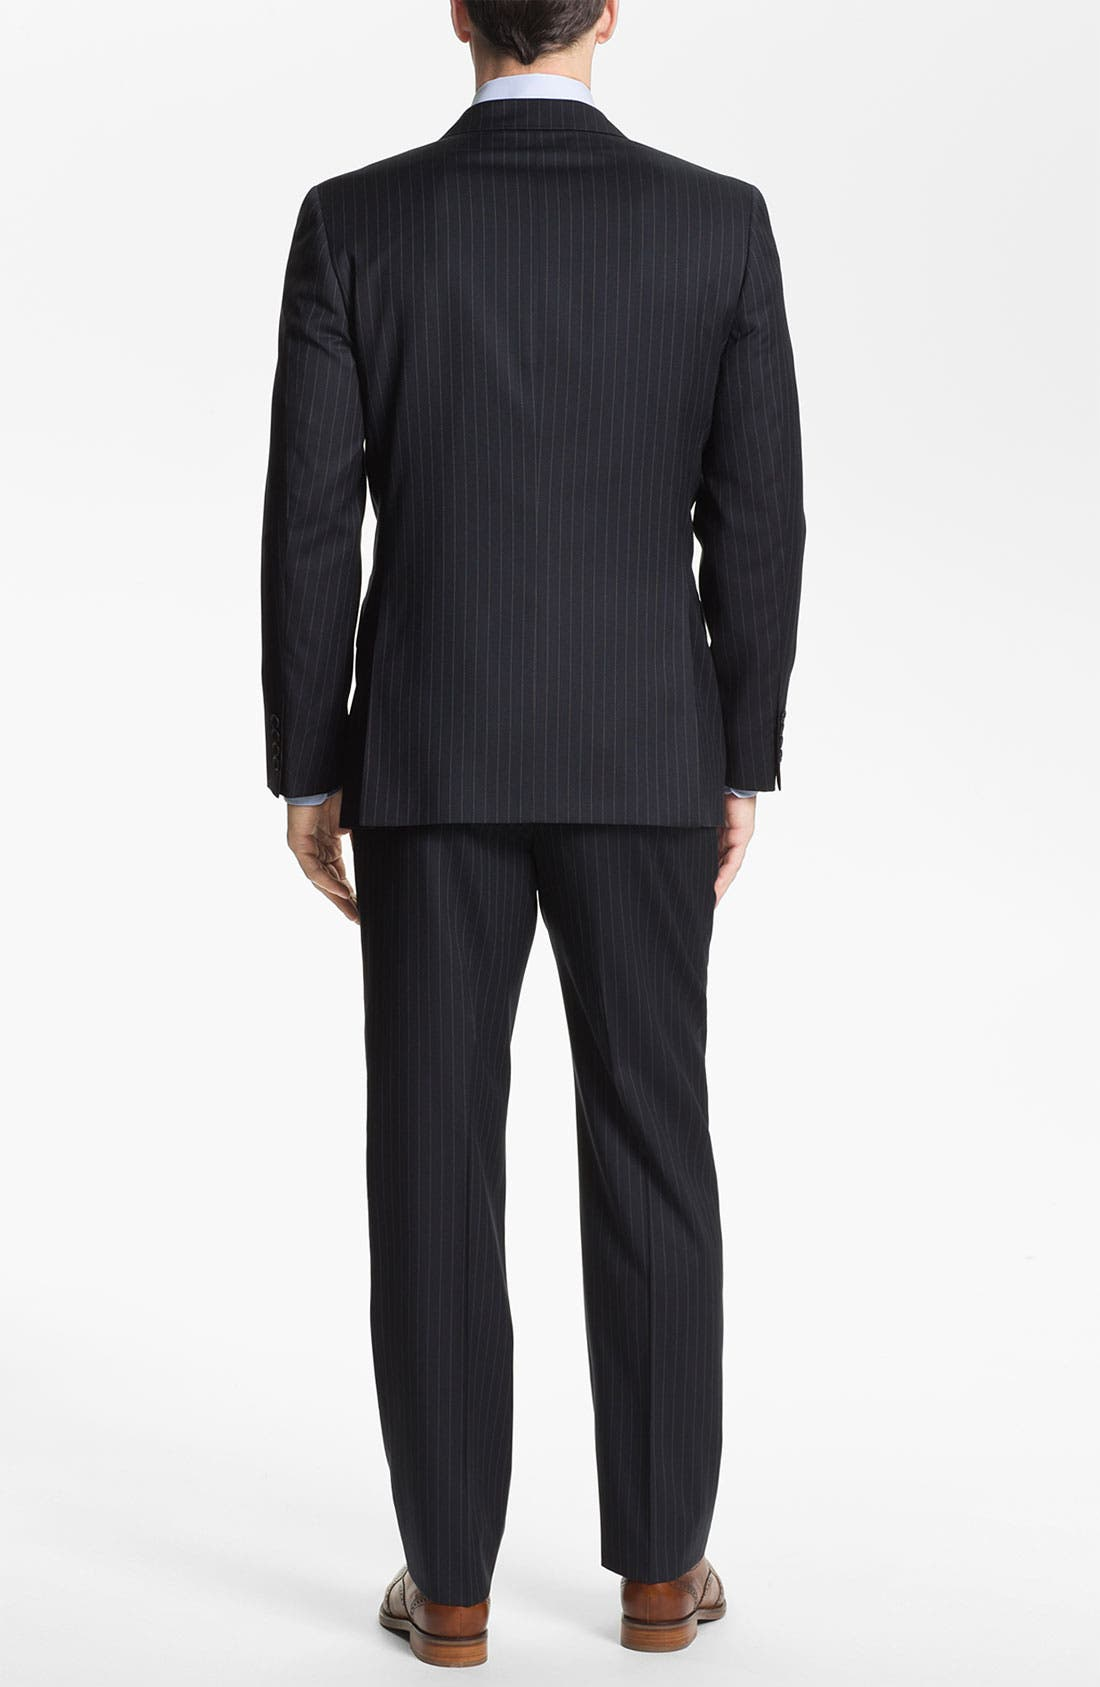 Alternate Image 3  - Joseph Abboud Trim Fit Peak Lapel Stripe Suit